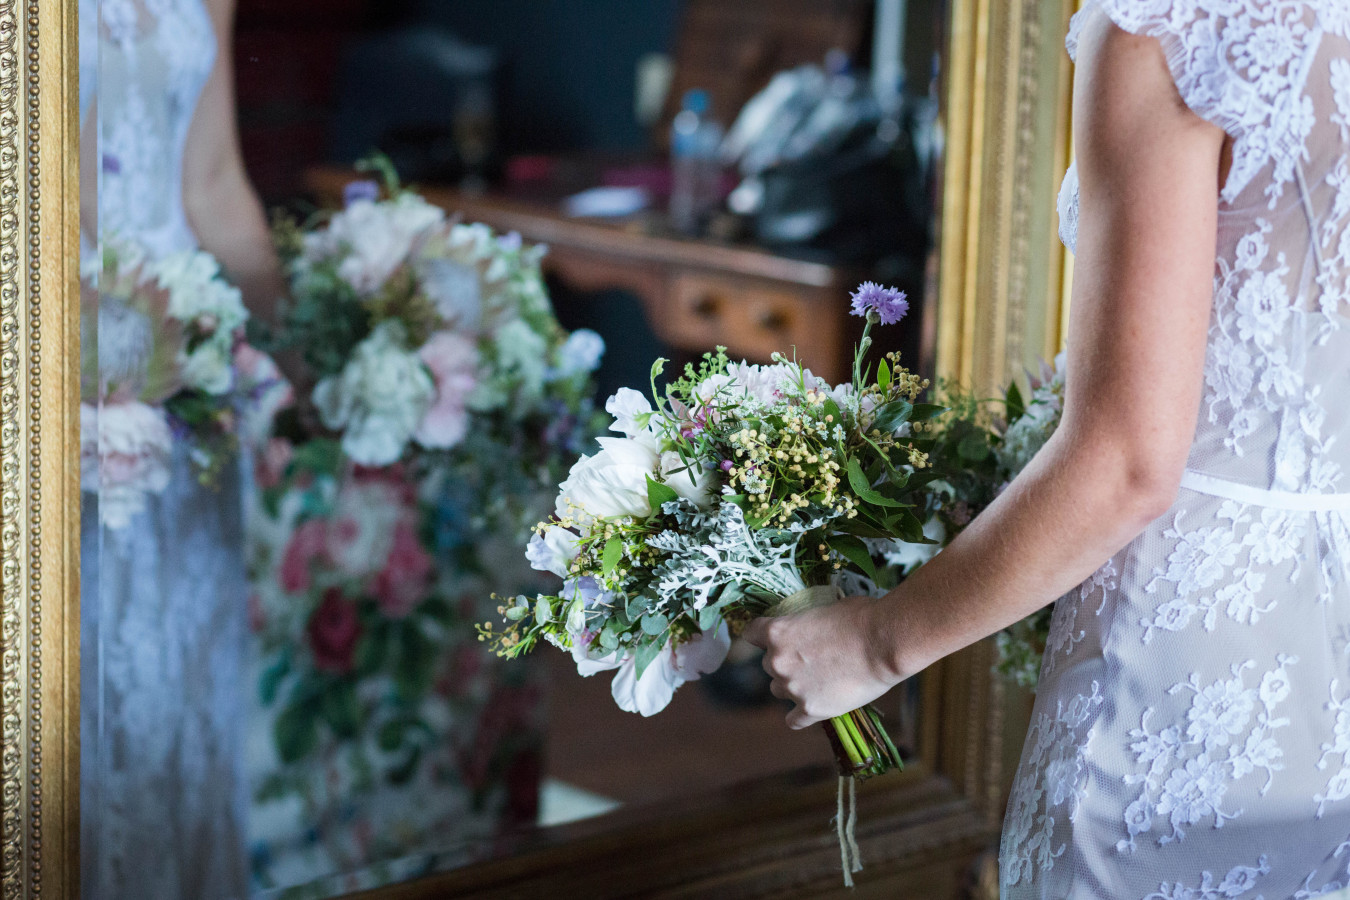 Selecting a bouquet 2